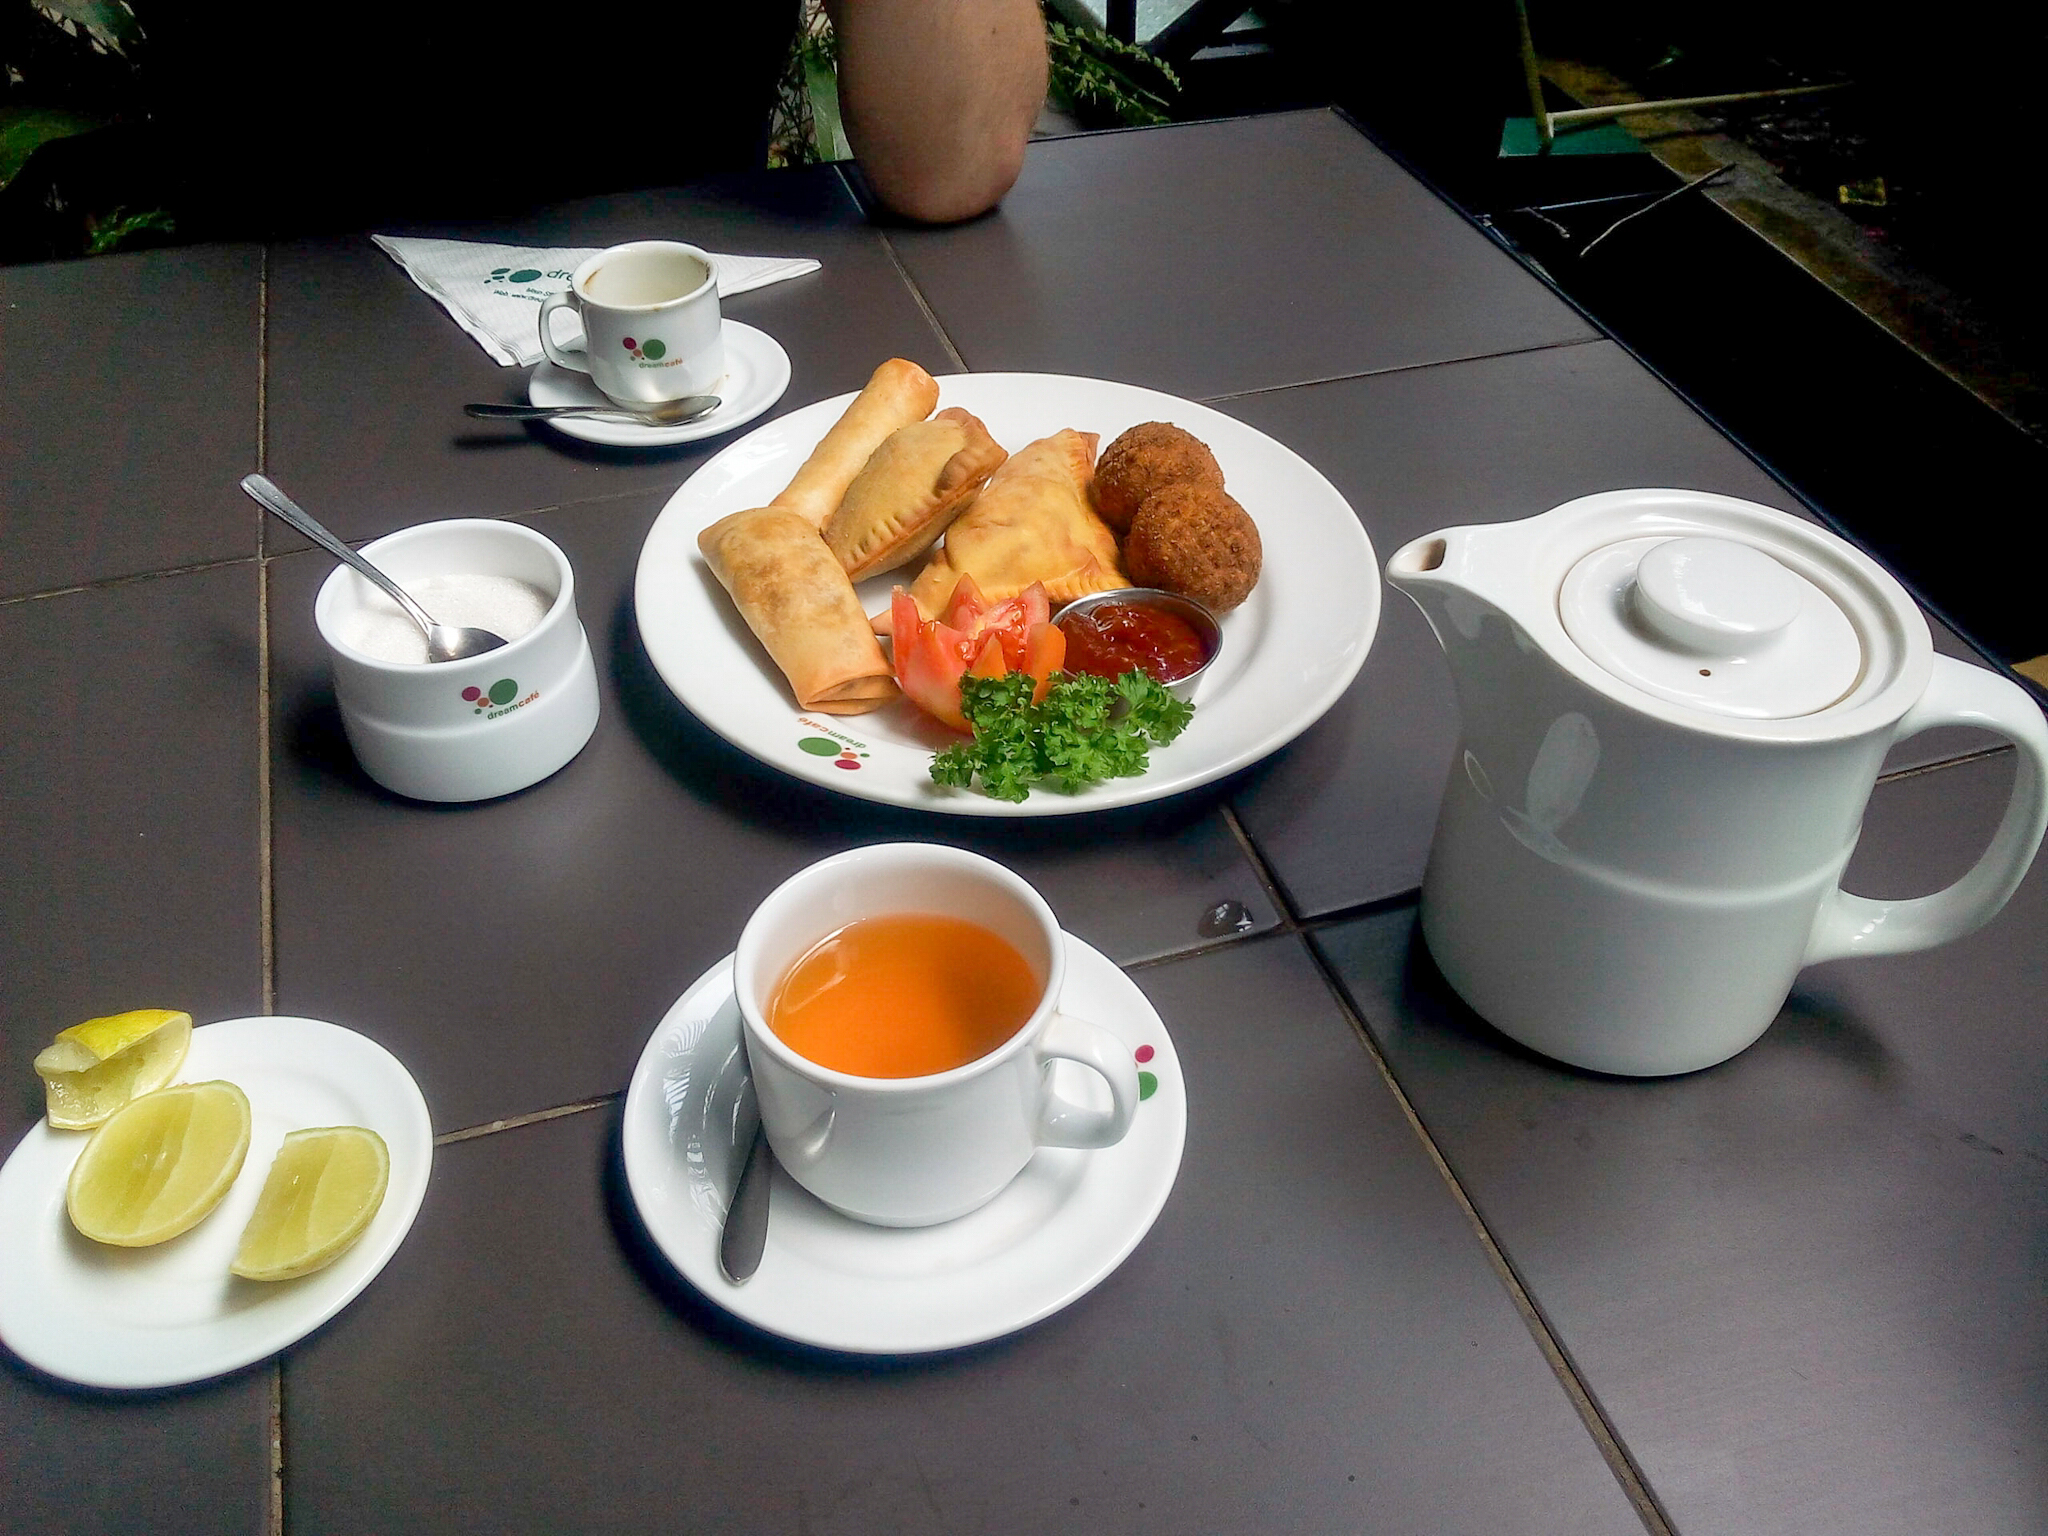 Sri Lankan short eats and tea